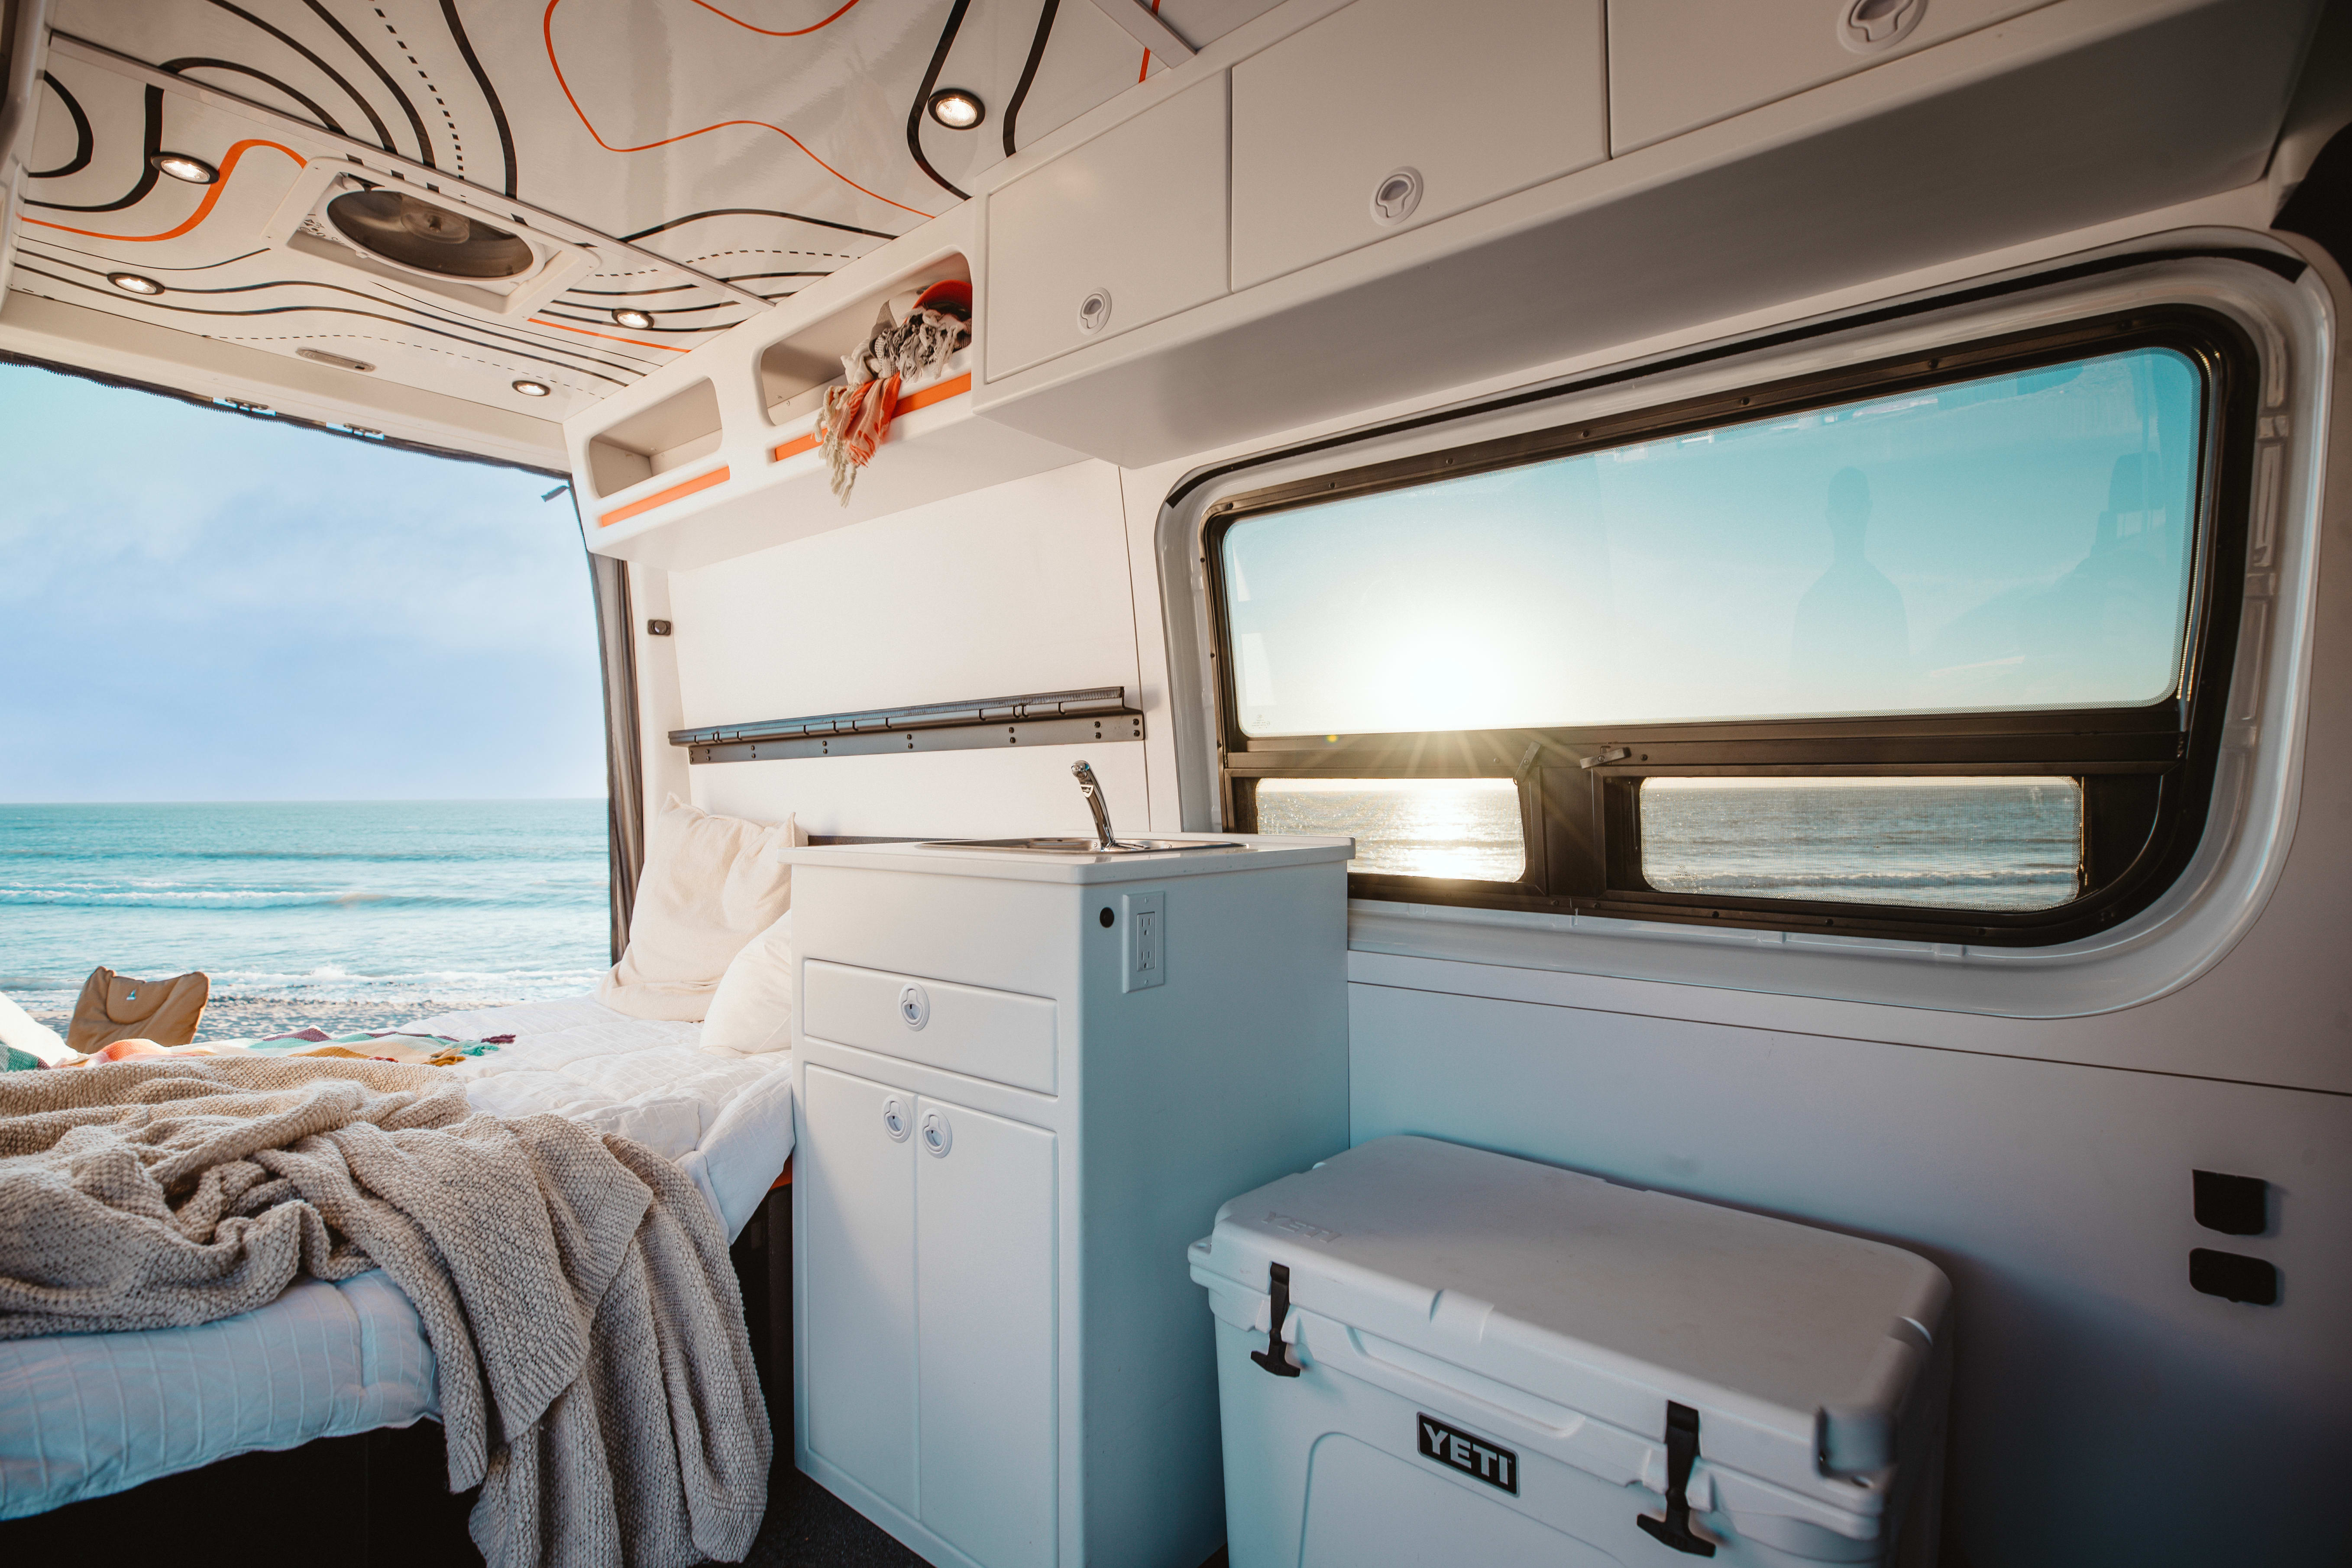 The dinette converts to lower bed You can remove the top bed for an open concept roomy van.. Mercedes-Benz Sprinter 2020